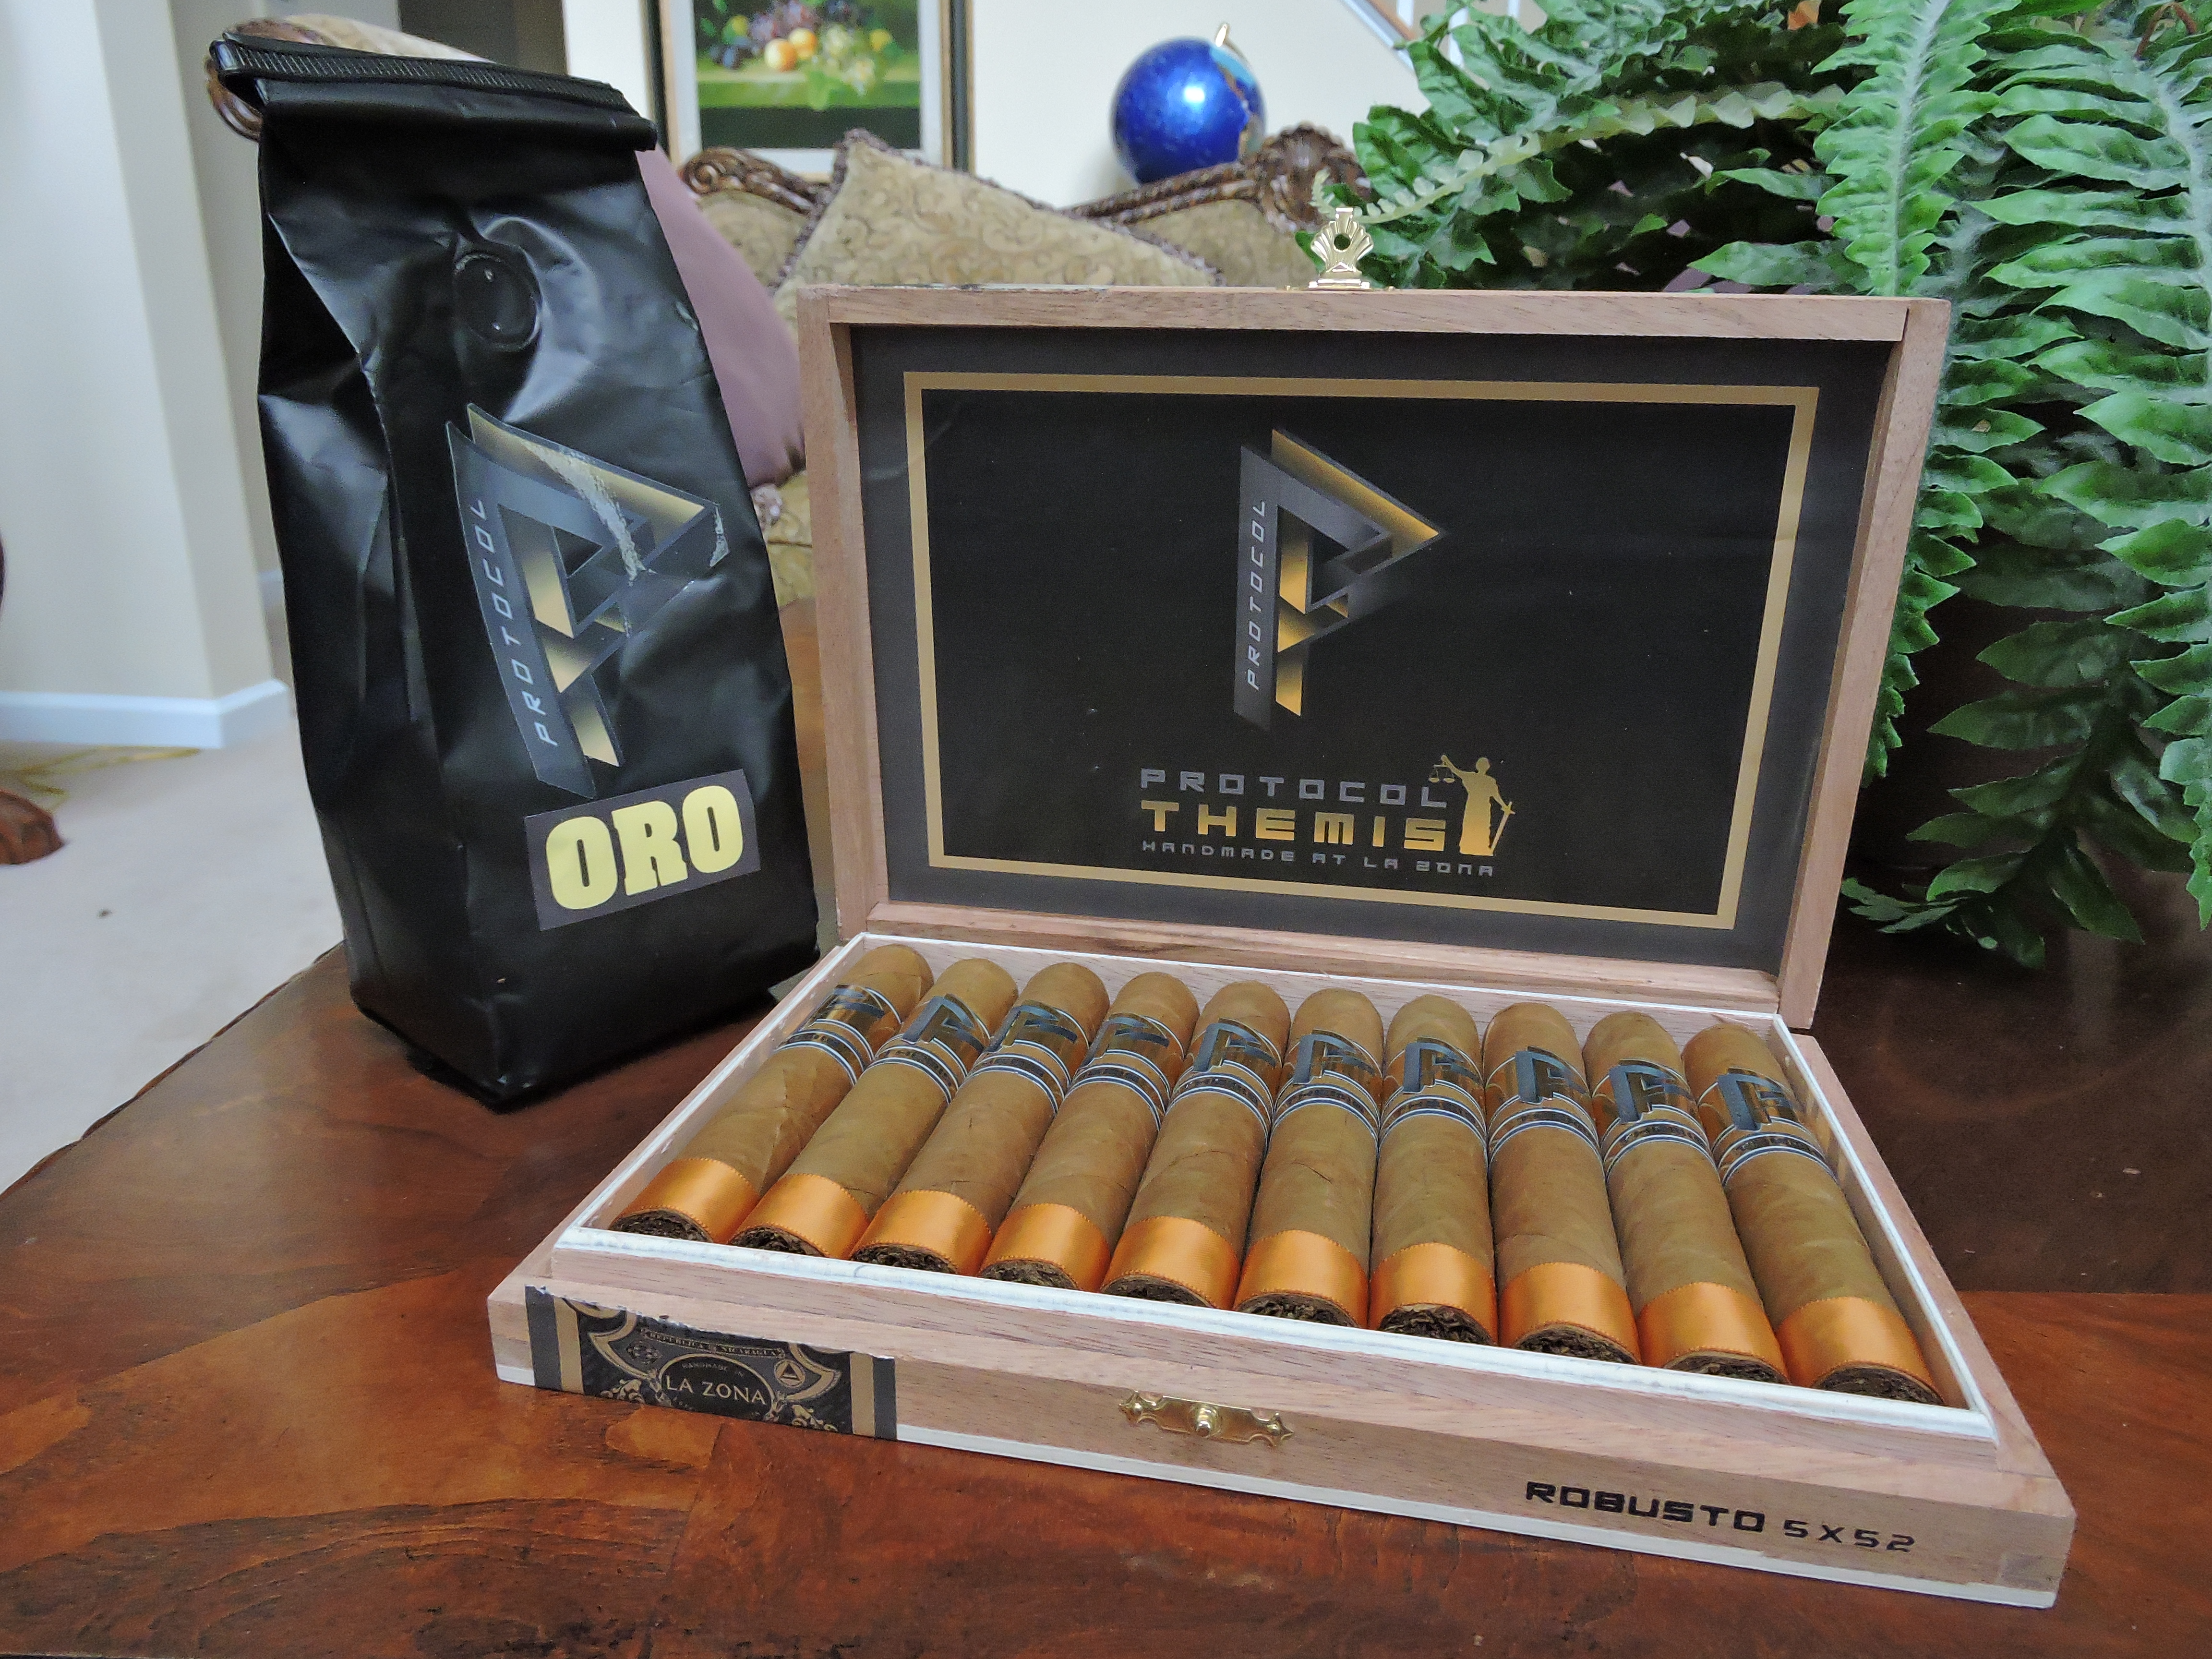 Protocol Themis Robusto Box and Oro Coffee Bag